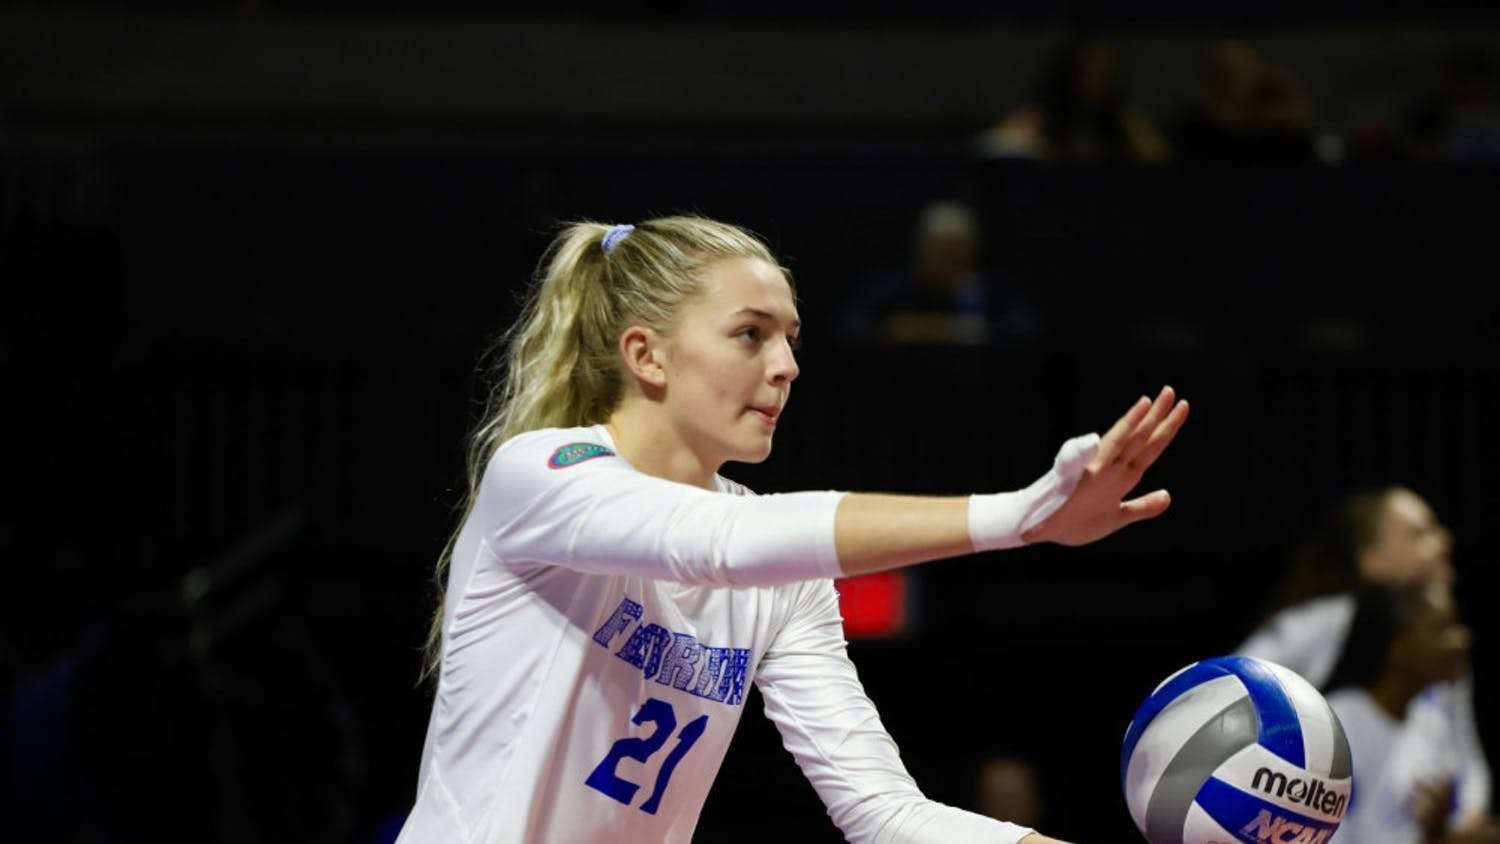 Setter Marlie Monserez, pictured during 2019, prepares to serve. She recorded 38 assists Saturday in Florida's 3-0 victory over Coastal Carolina.